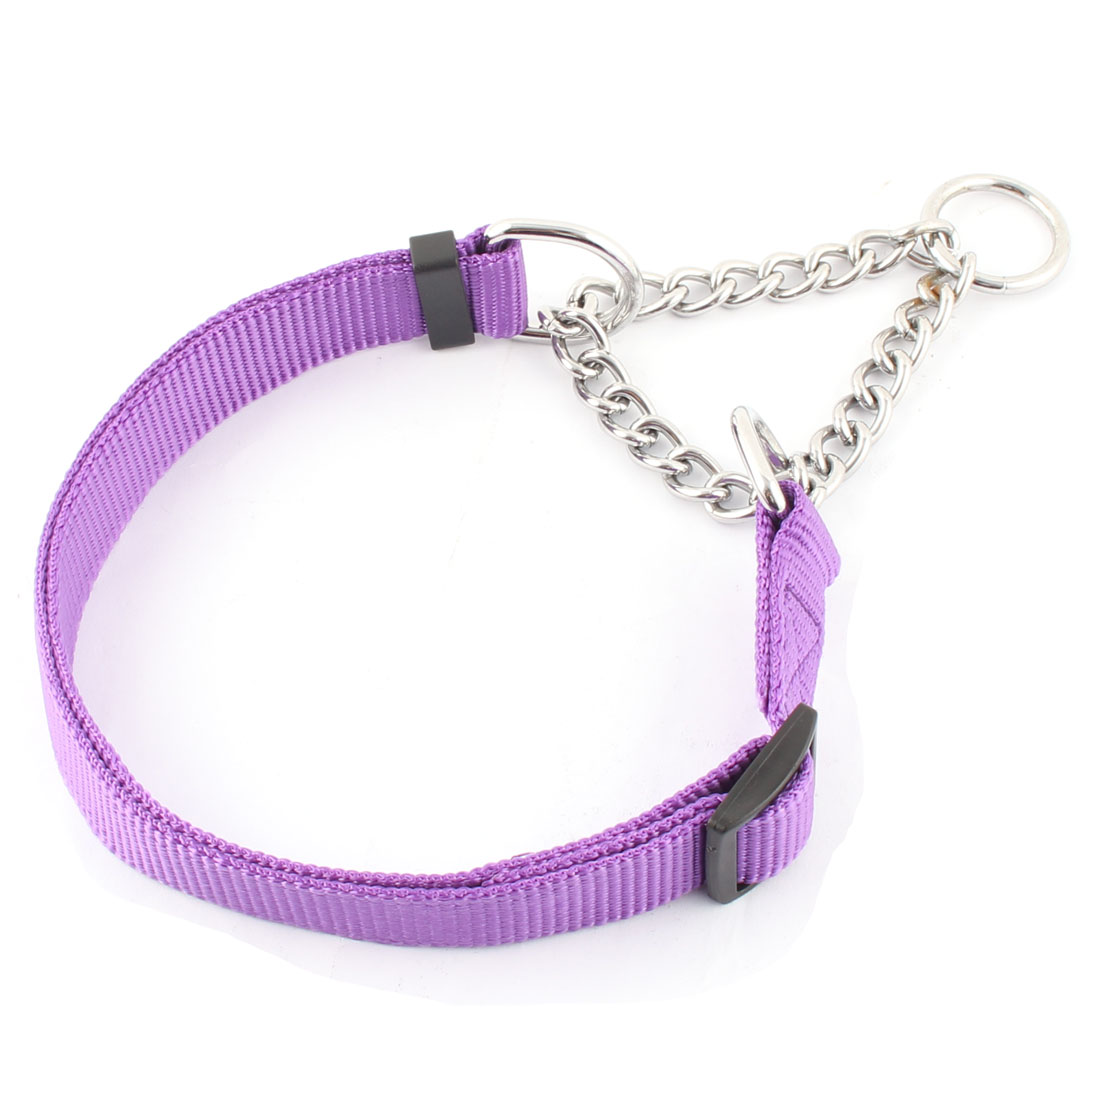 Dog Outdoor Nylon Rope Adjustable Traction Rope Neck Chain Leash Purple